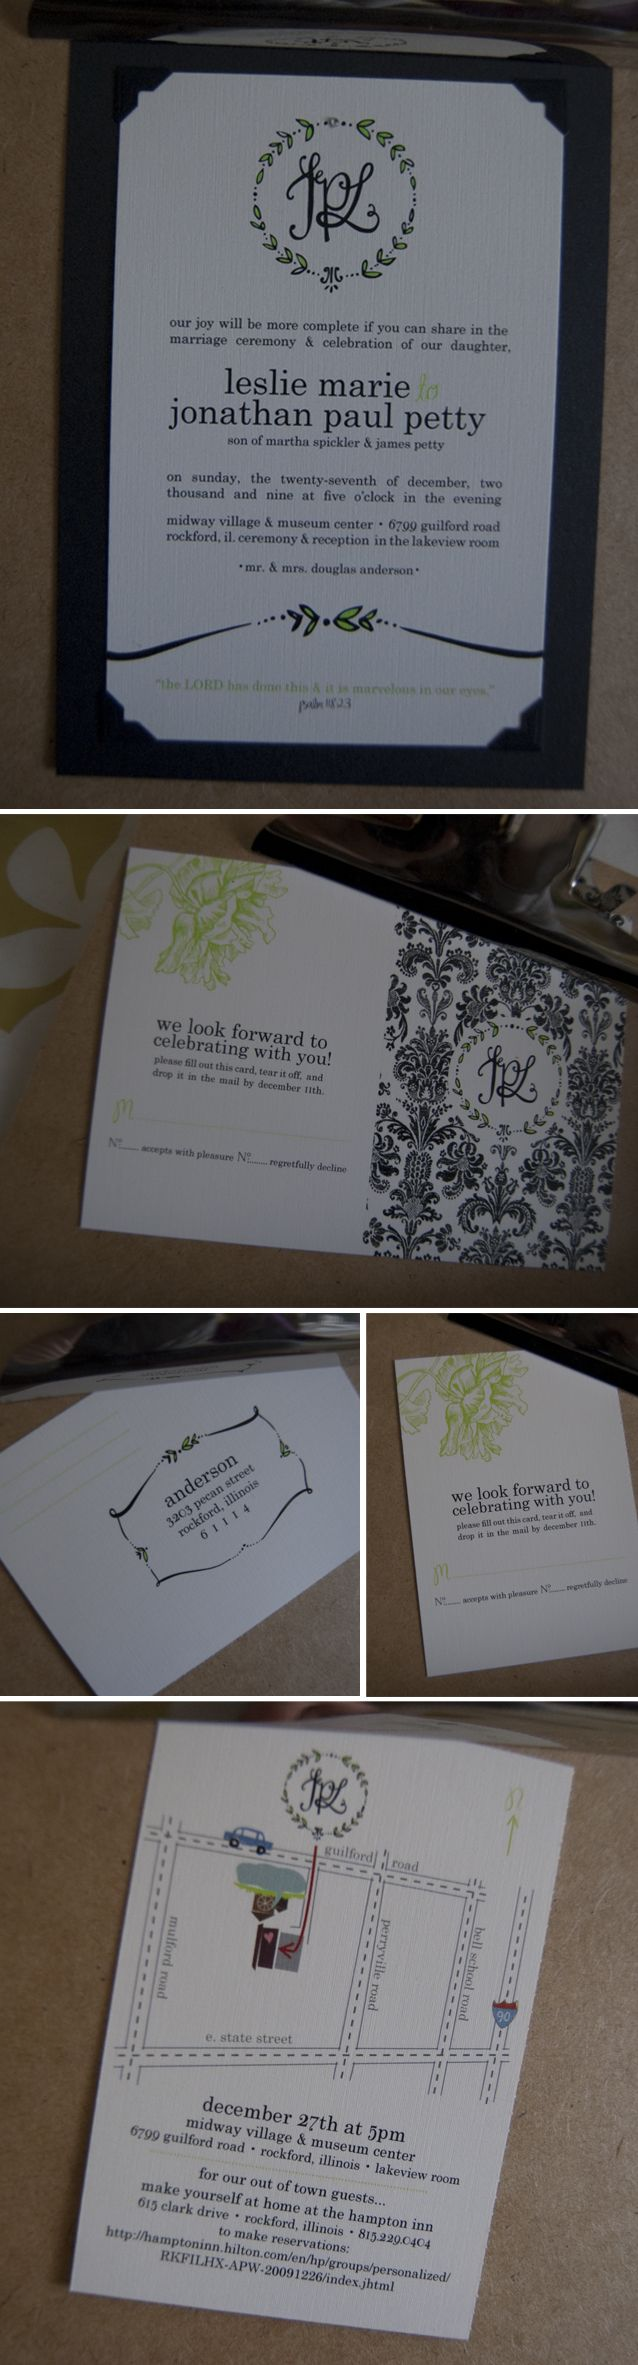 sample wedding invitation letter for uk visa%0A lindsaylettersleslieandjonsinvitations